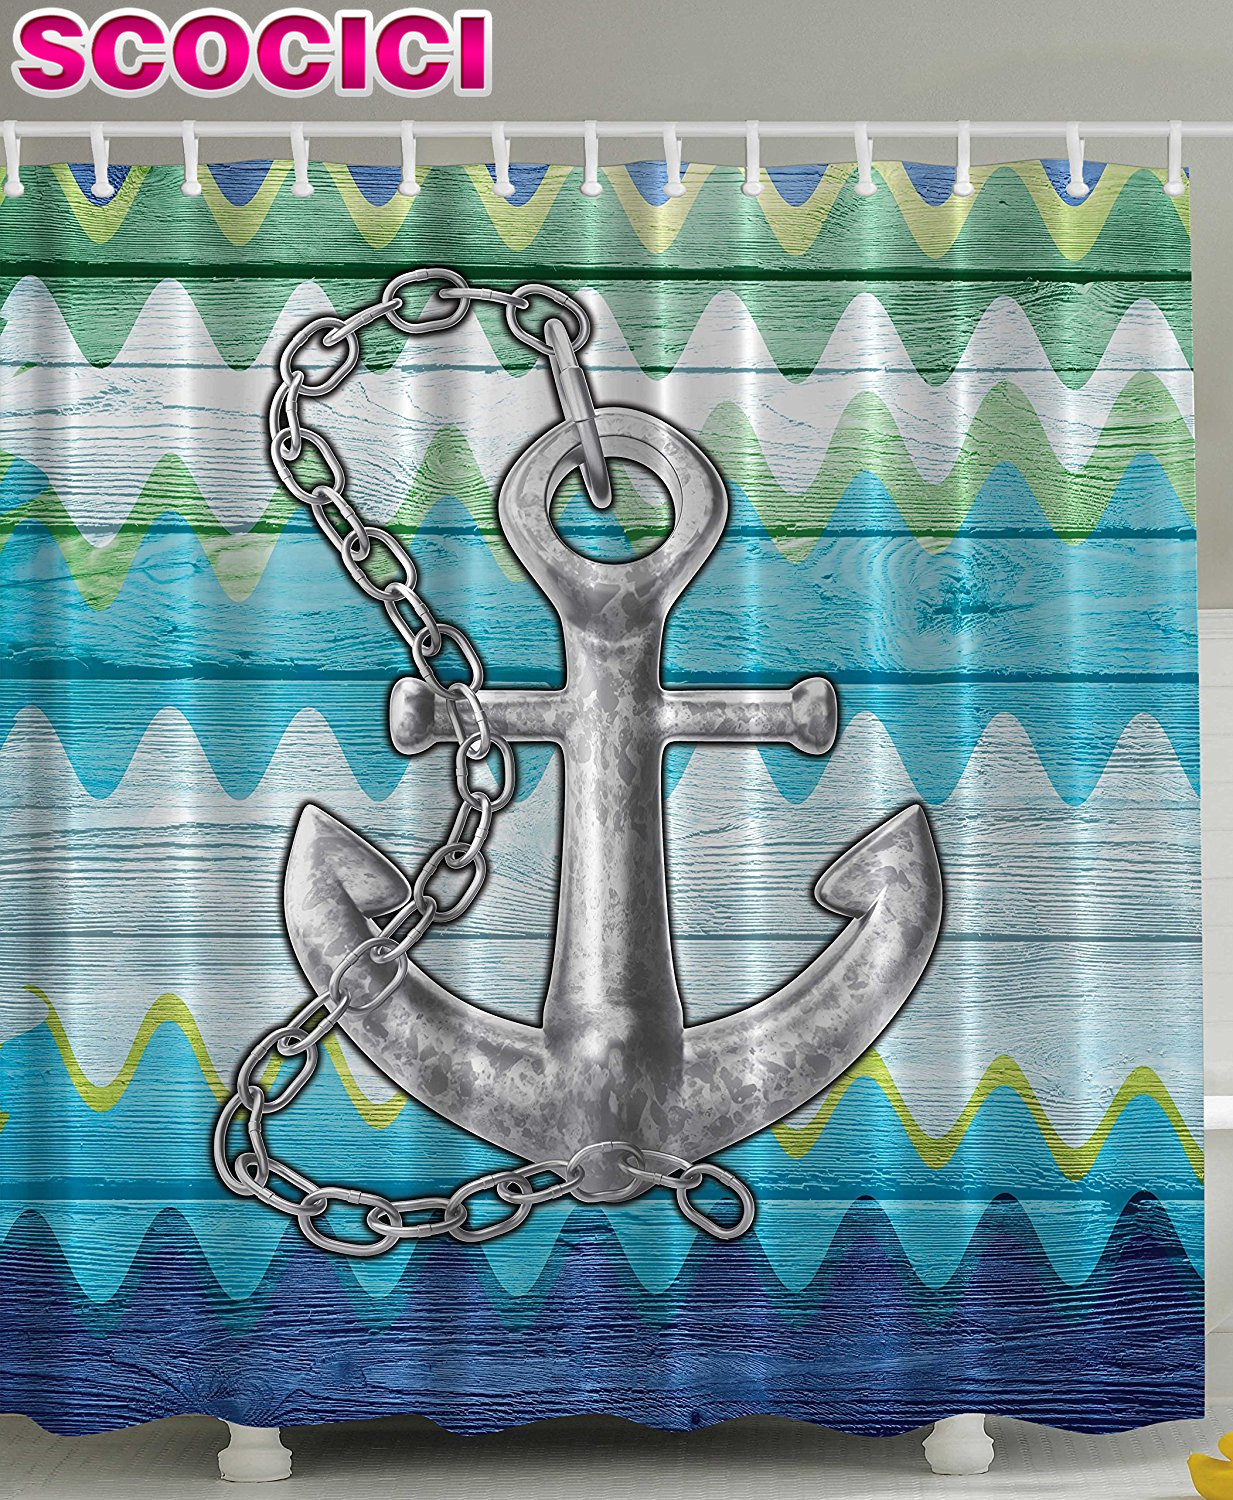 Chevron shower curtain with anchor - Chevron Shower Curtain Anchor Decor Nautical With Steel Chain Rustic Wooden Planks Buoy Kids Home Textiles Bath Decor Lovely Dre In Shower Curtains From